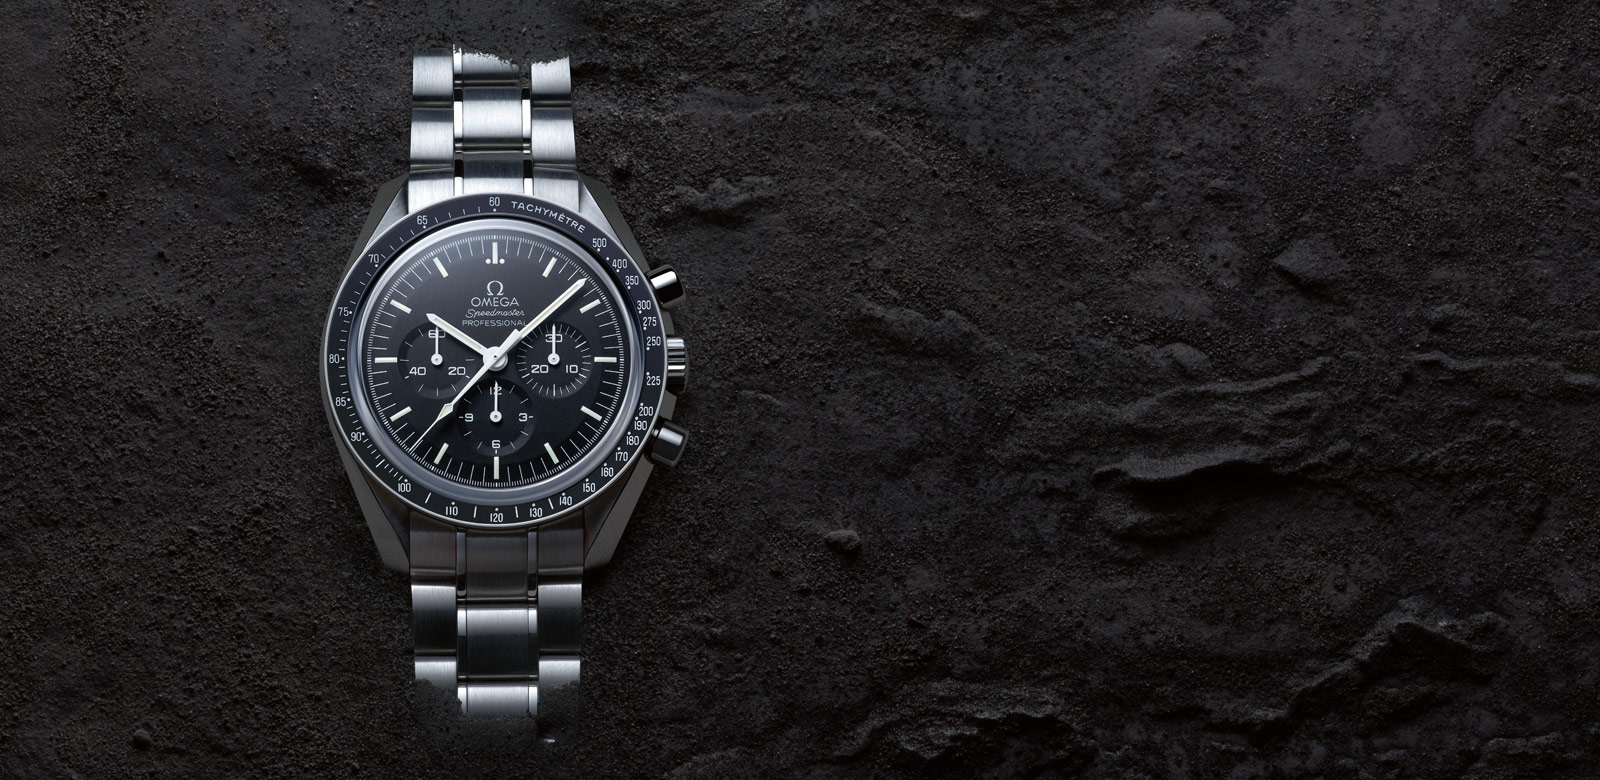 hight resolution of the first watch worn on the moon